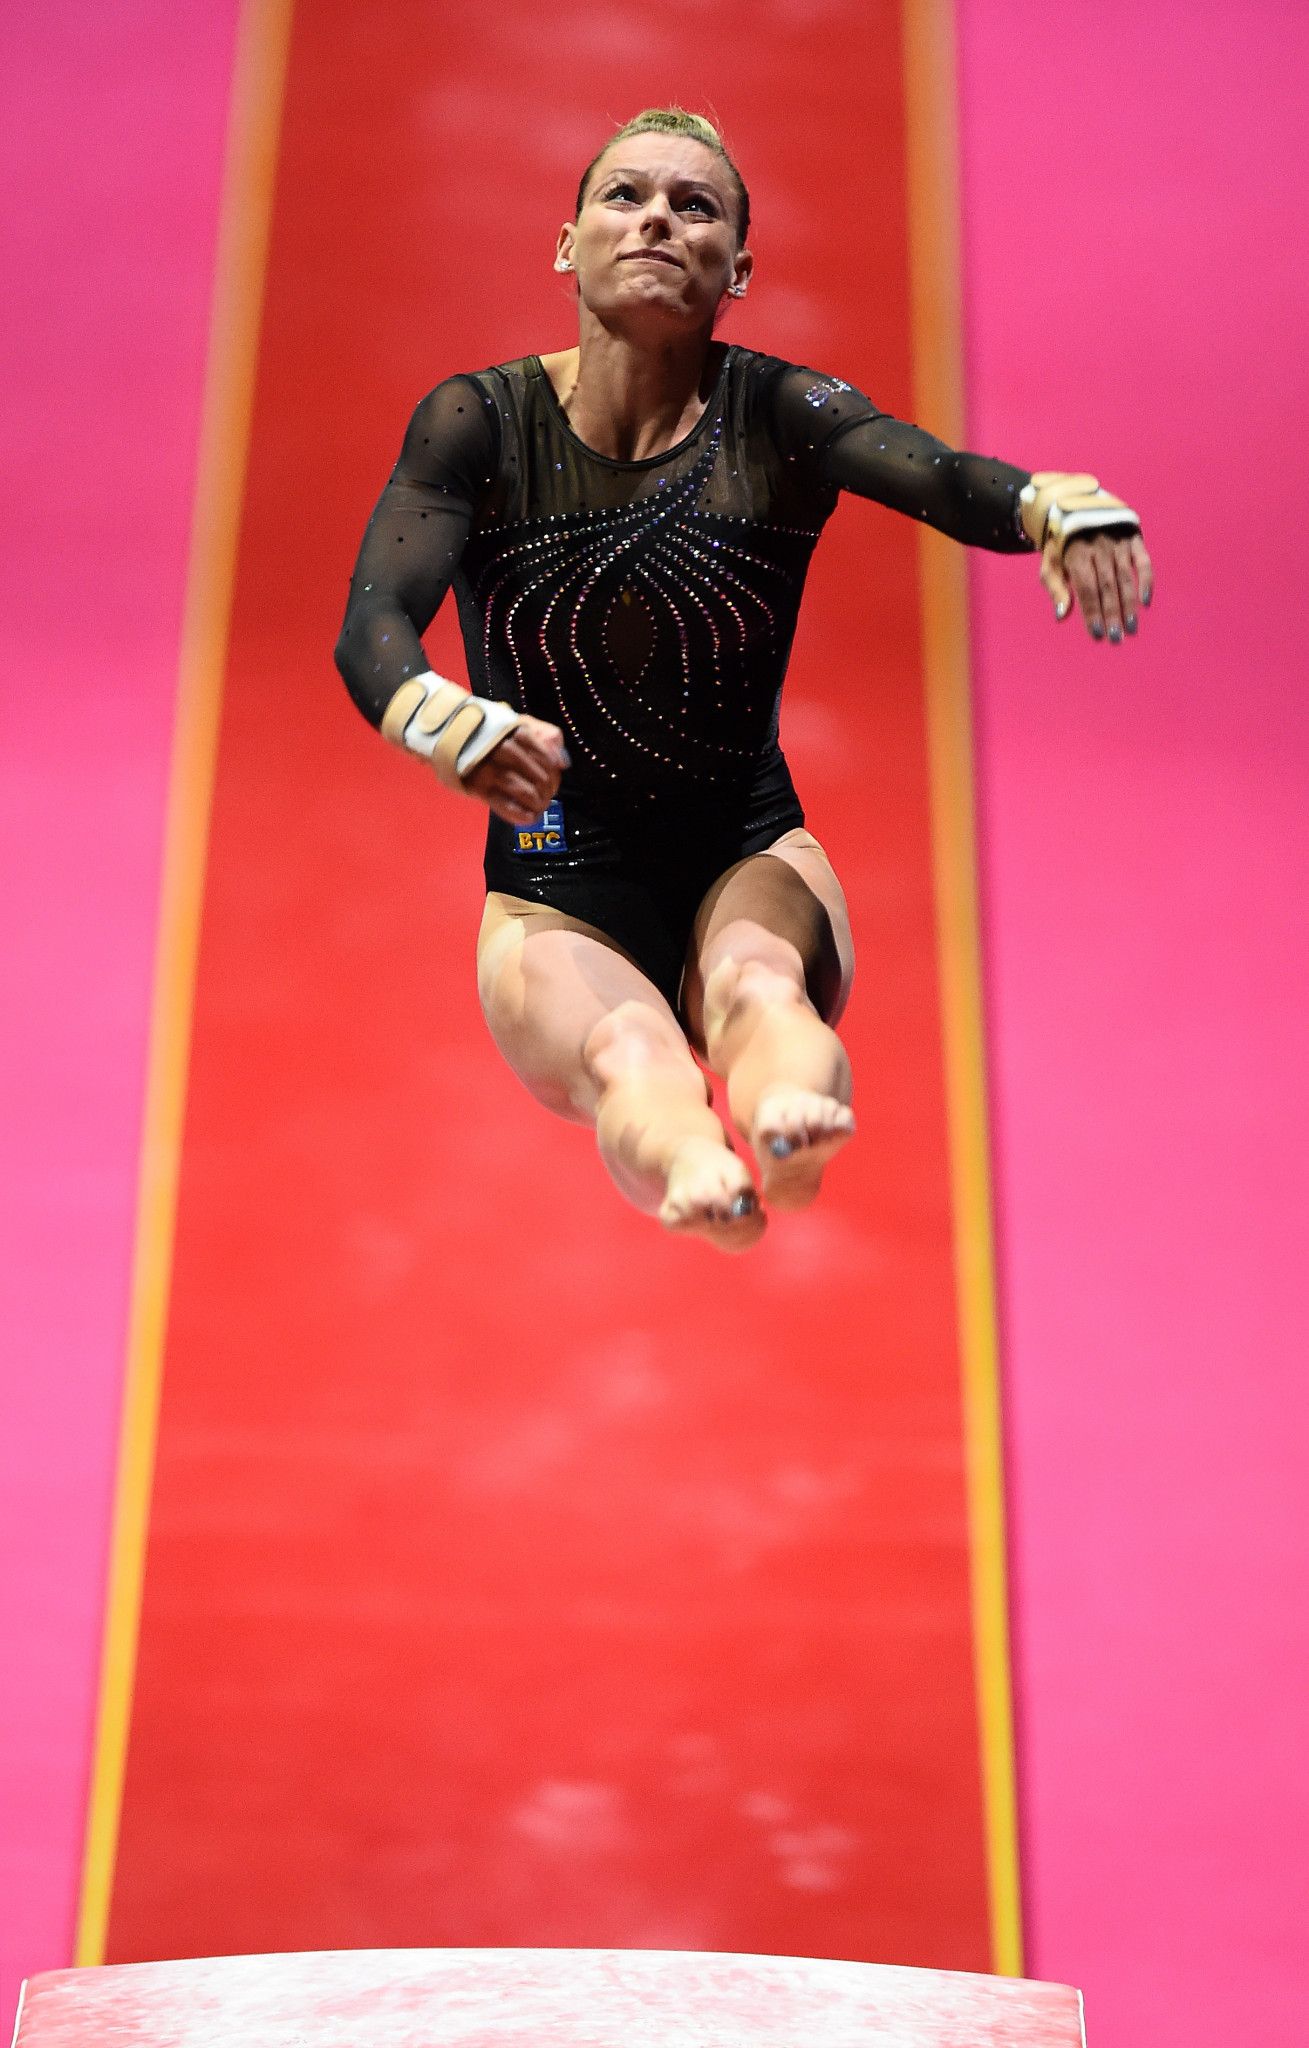 Slovenia's Teja Belak was the strongest performer in women's vault qualification ©Getty Images